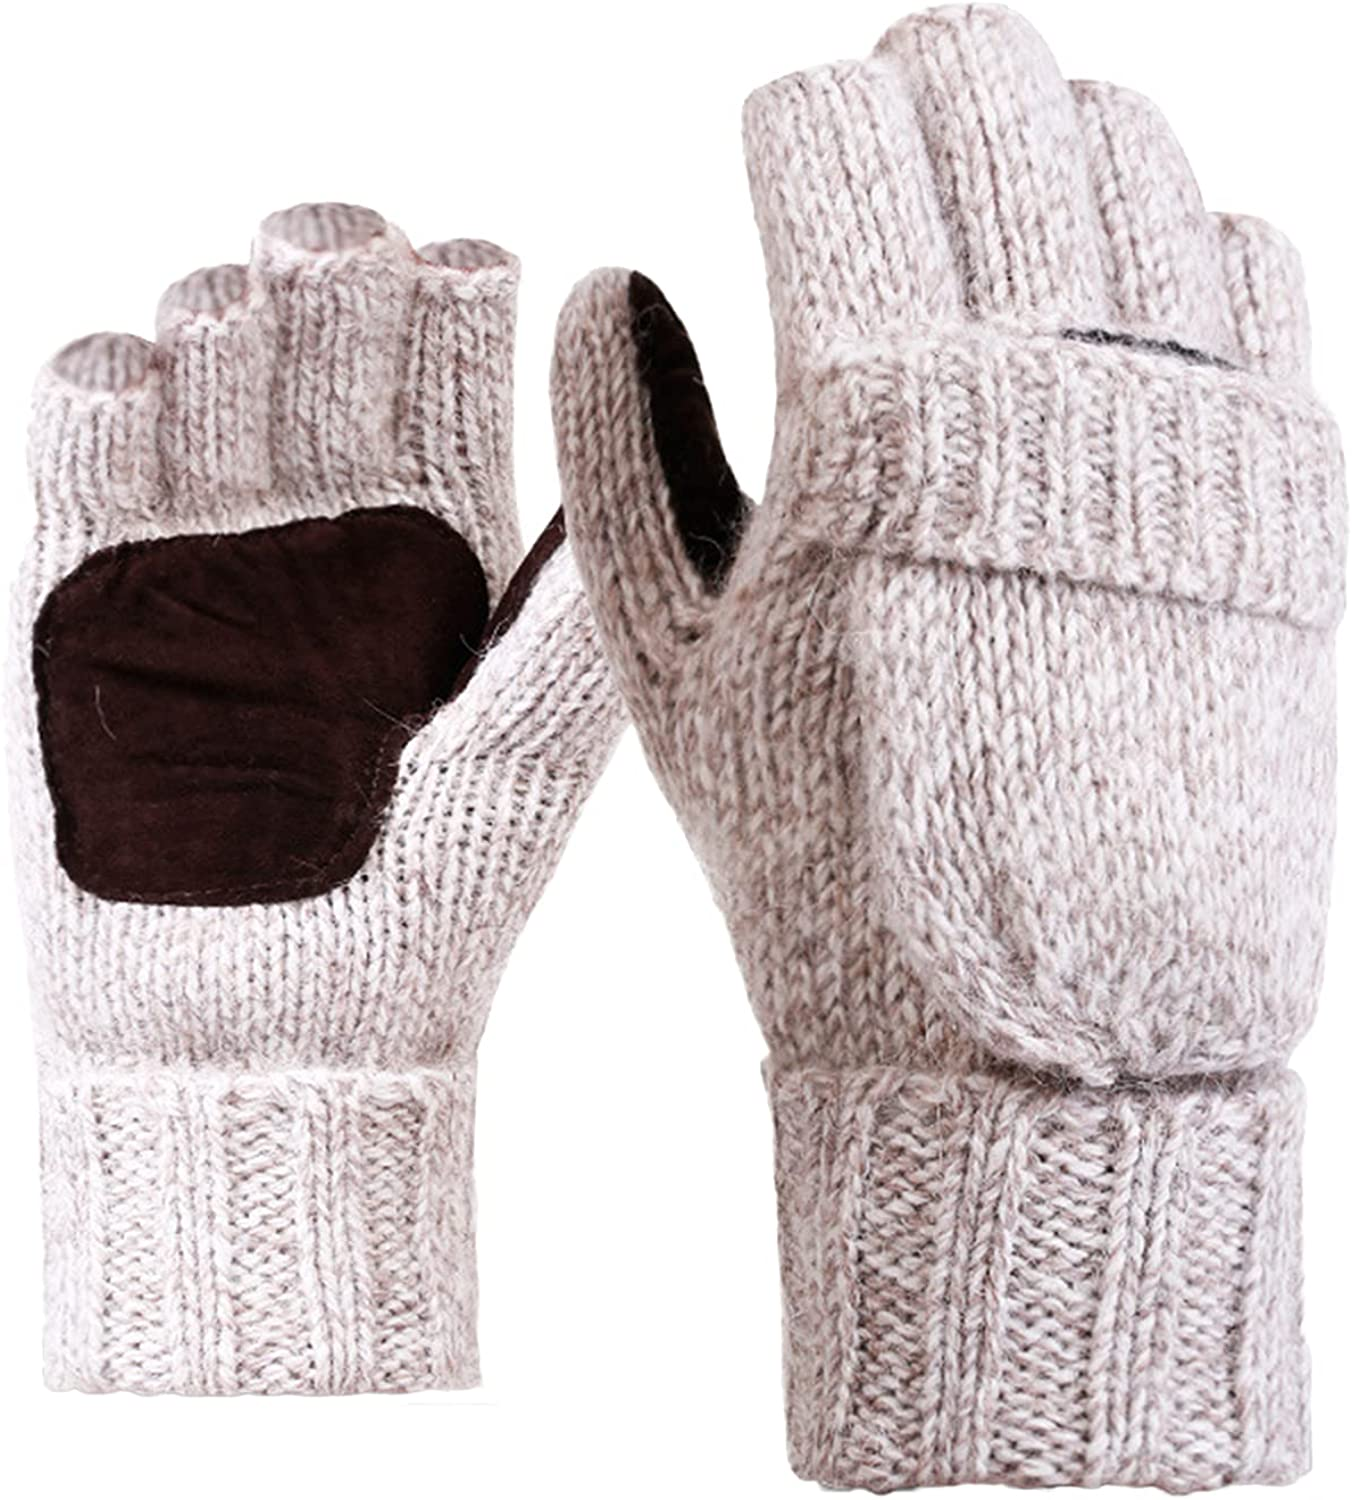 Rehomy Winter Knitted Fingerless Gloves Woolen Thermal Insulation Convertible Mittens Flap Cover for Women and Men